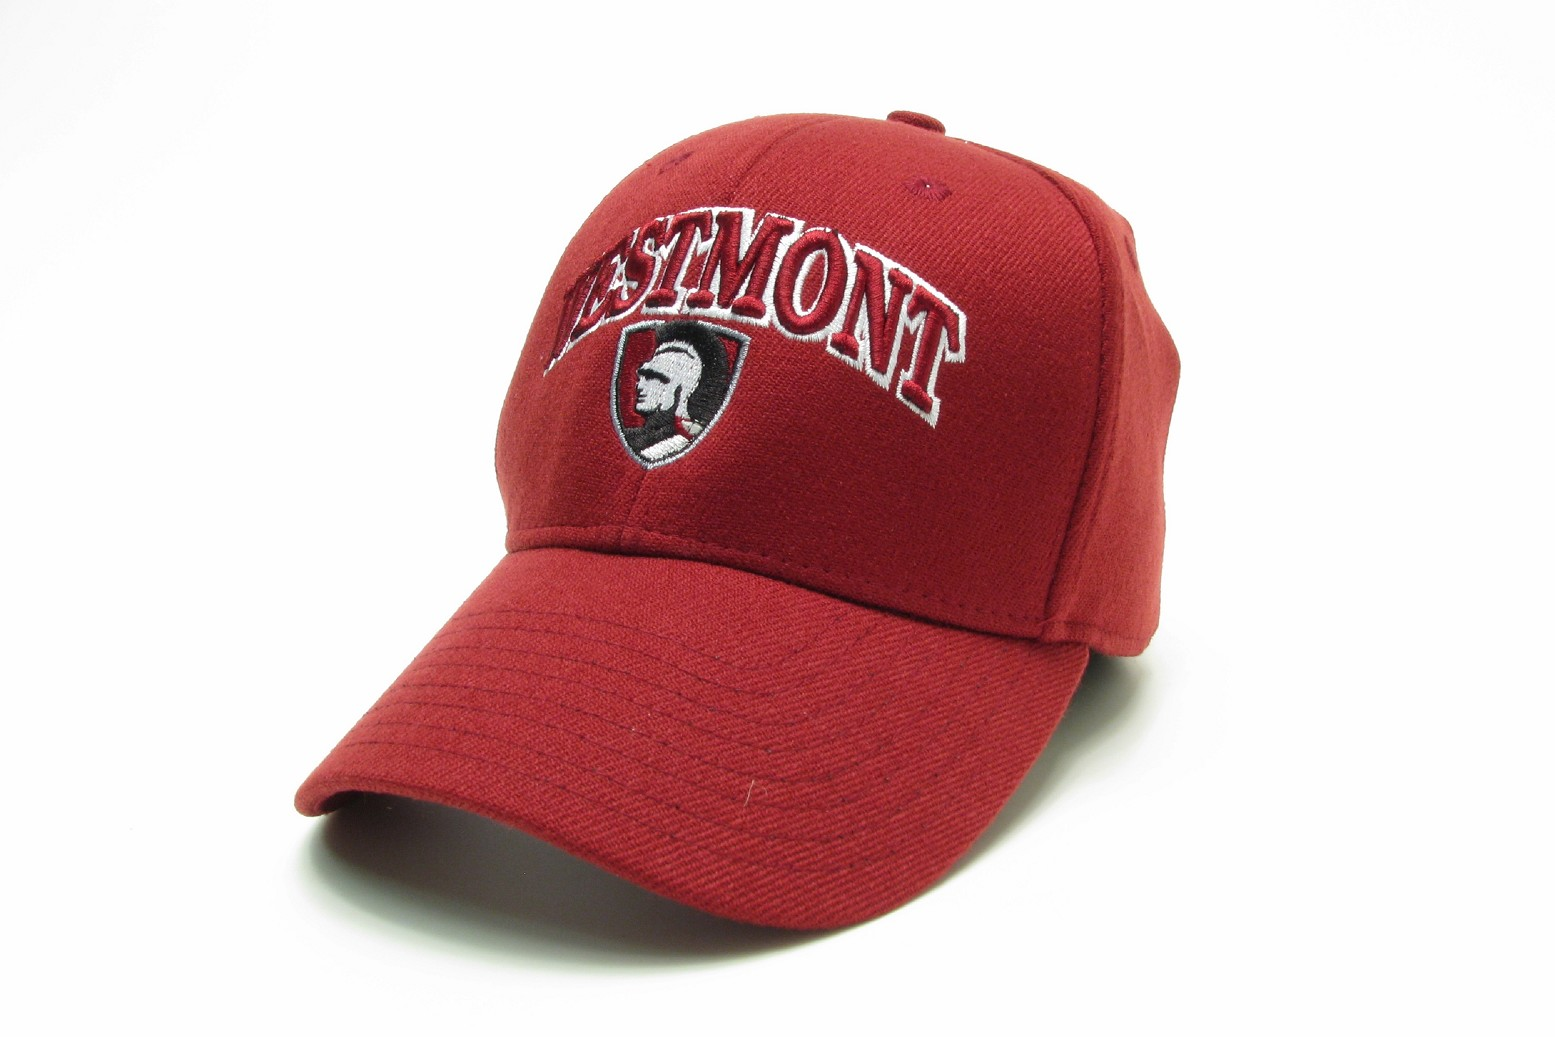 Image for the Westmont Warrior Hat product